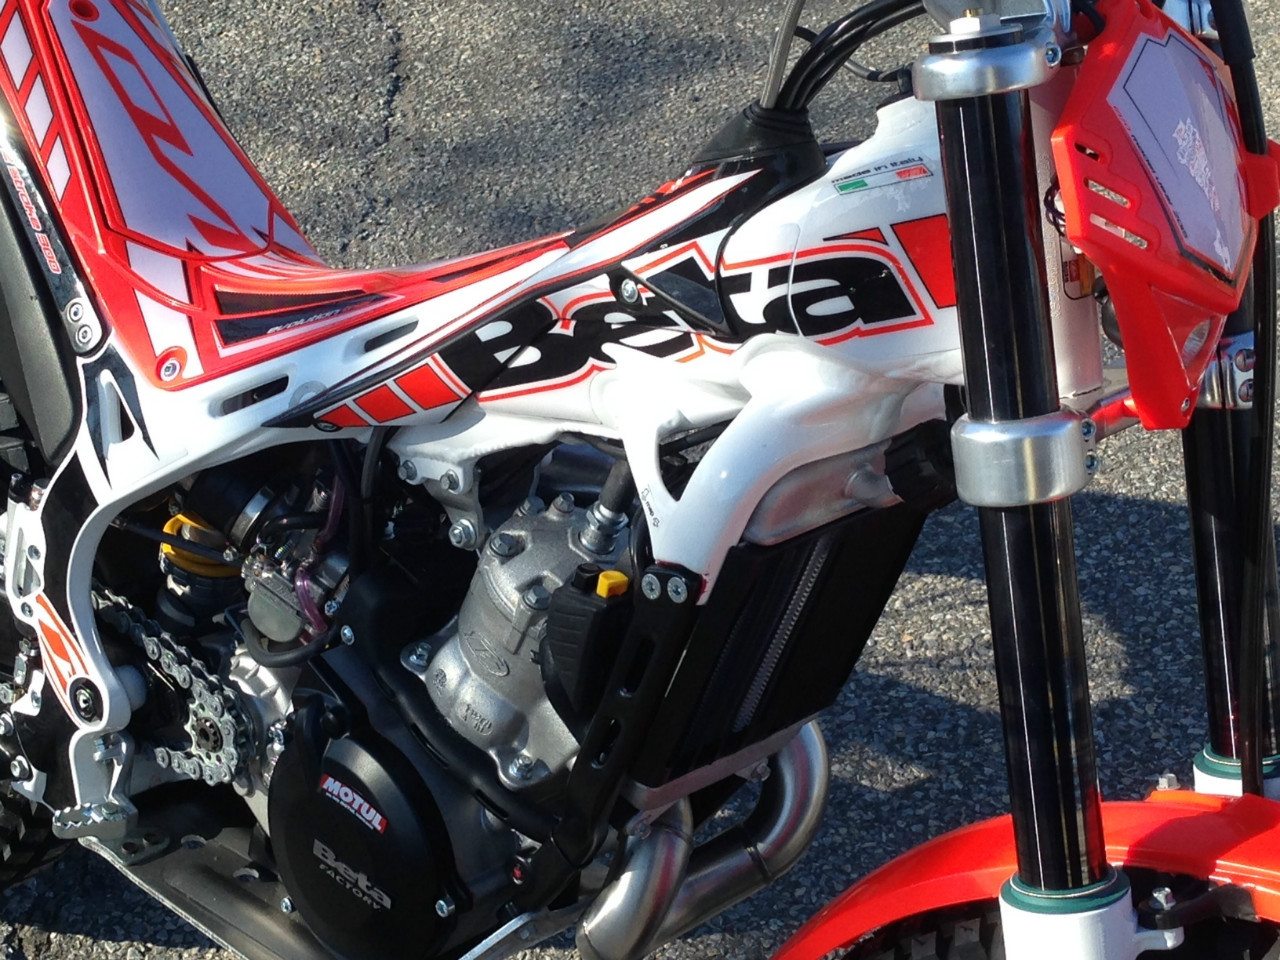 See more photos for this Beta EVO 300, 2015 motorcycle listing